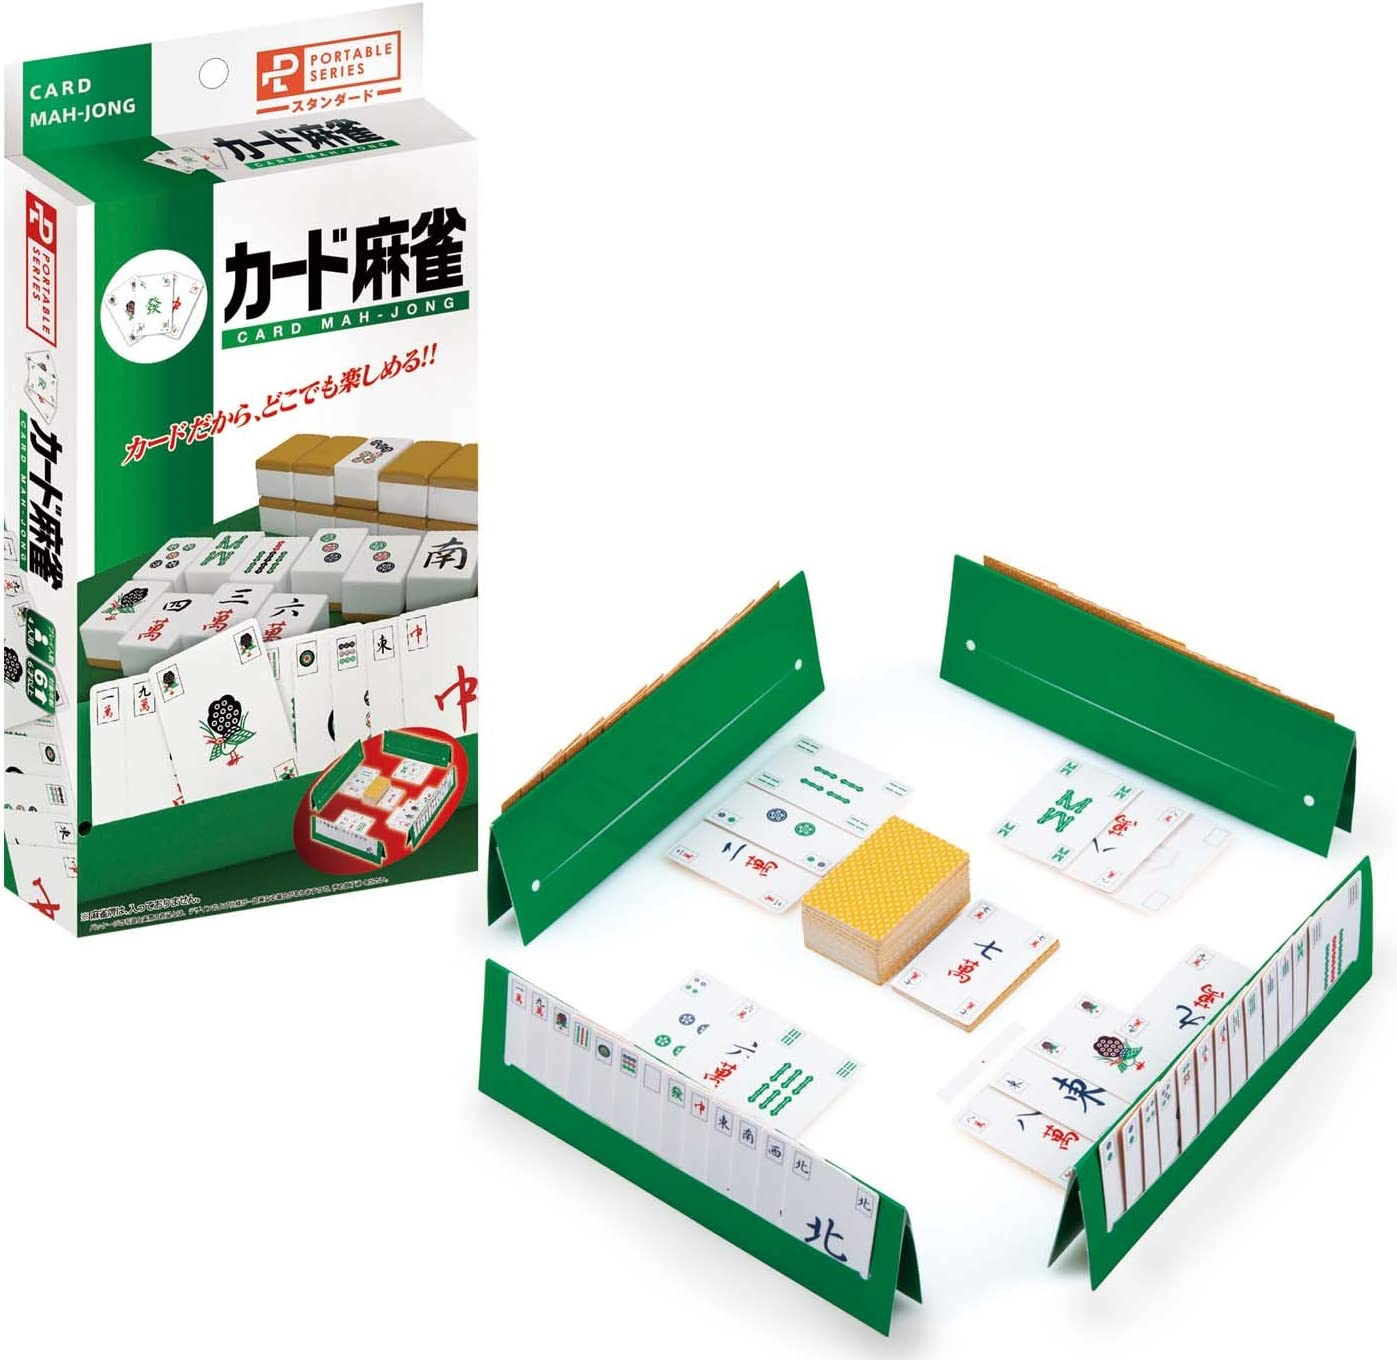 Portable Mahjong Card (NEW) (japan import) by Hanayama